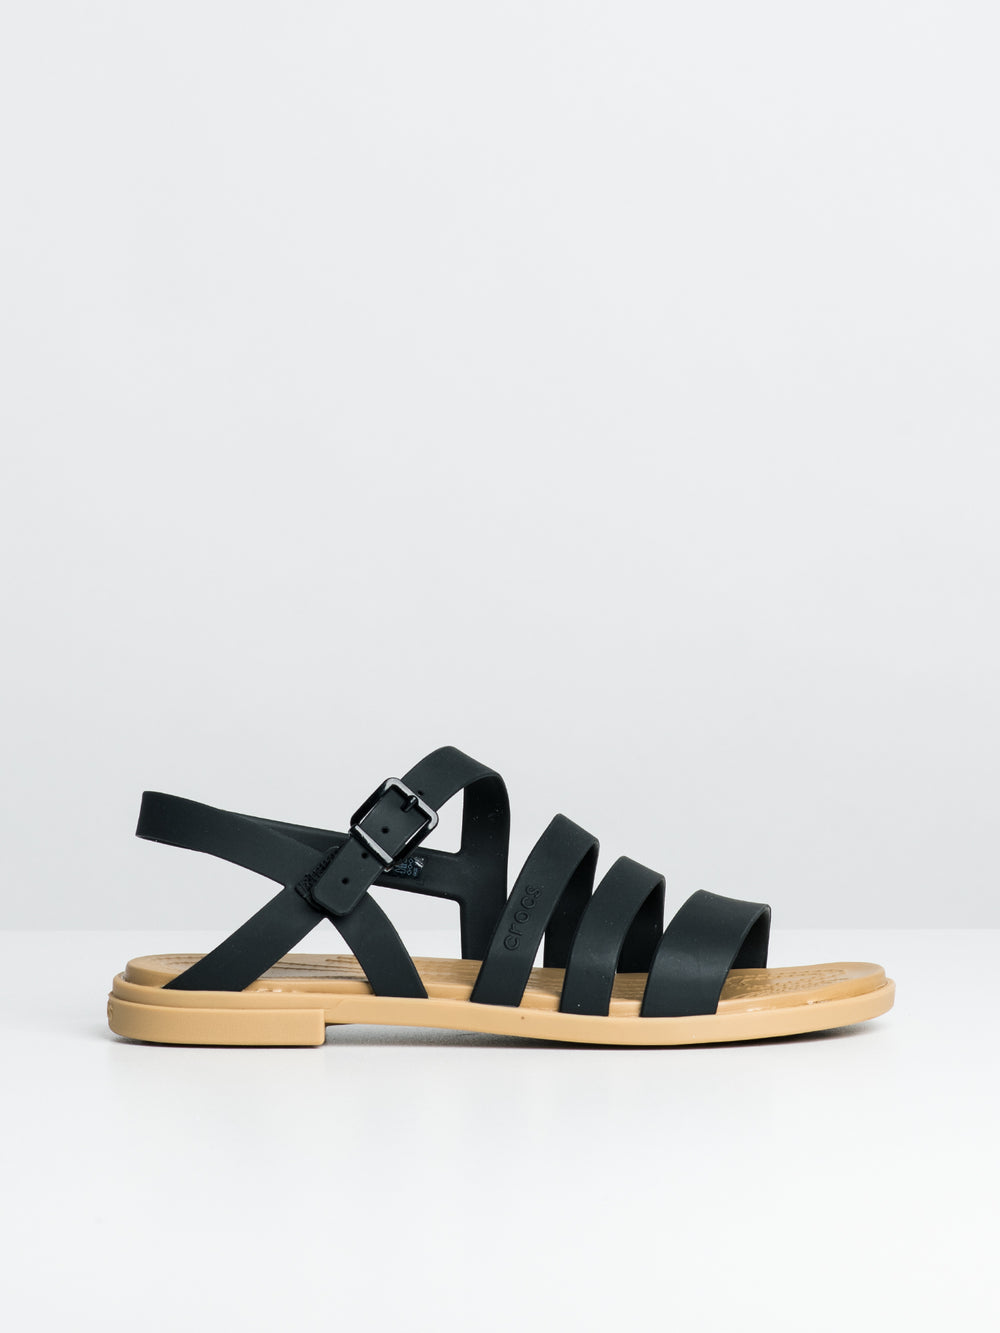 WOMENS TULUM SANDAL - BLACK